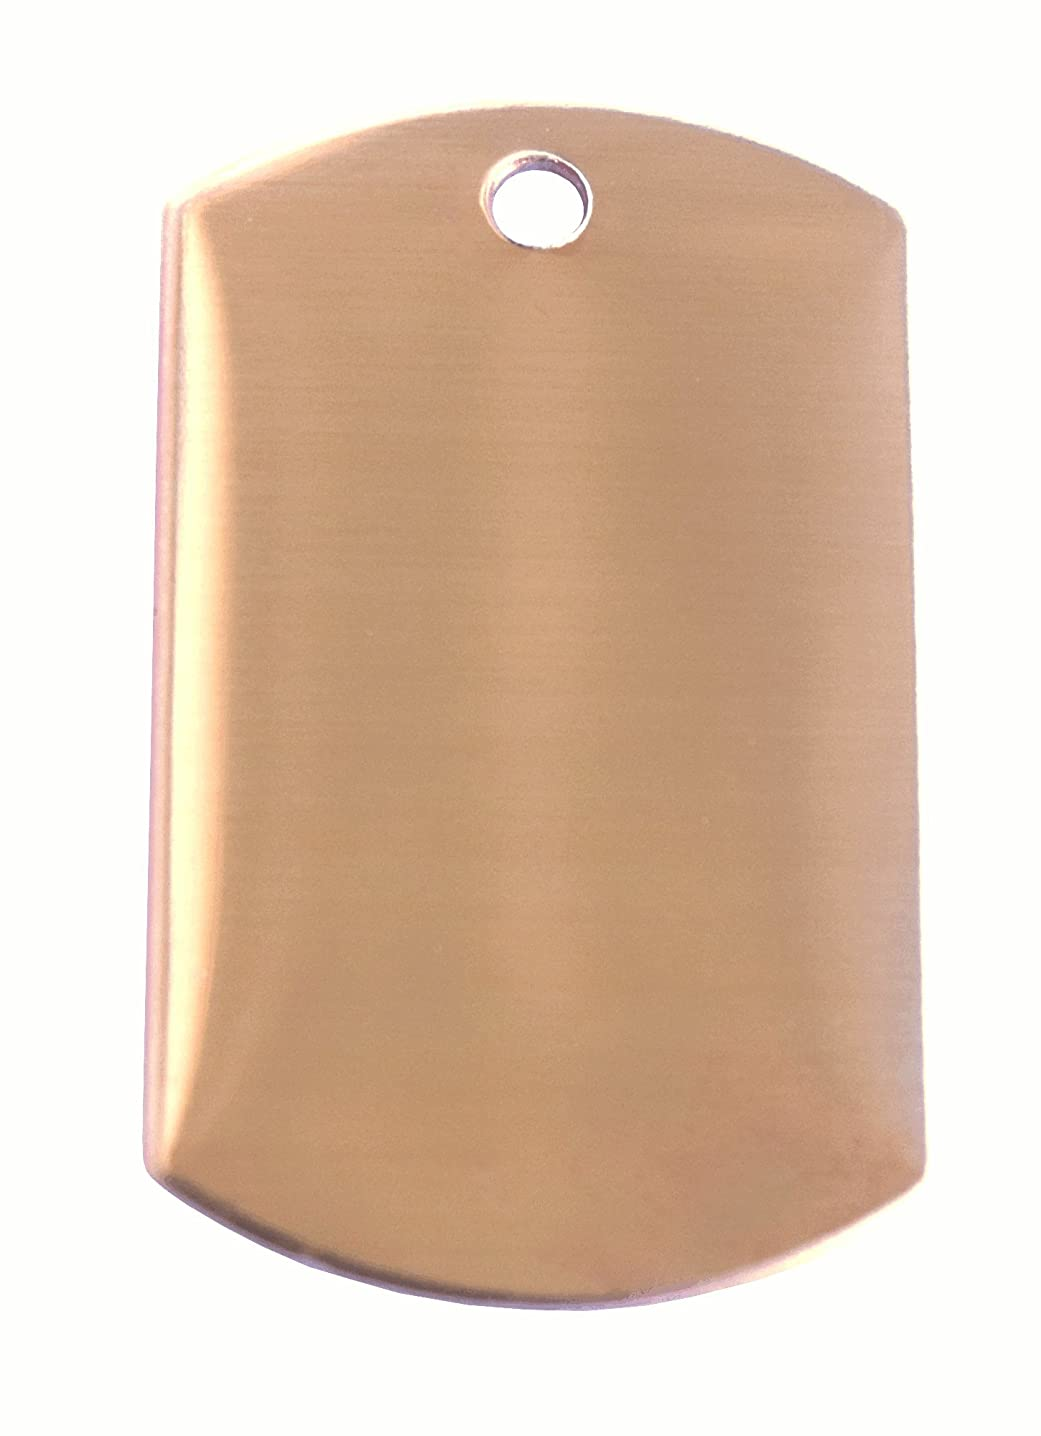 RMP Stamping Blanks, 3/4 Inch x 1-1/4 Inch Dog Tag with One Hole, Copper 0.021 Inch (24 Ga.) PVC Coating on Both Sides - 10 Pack